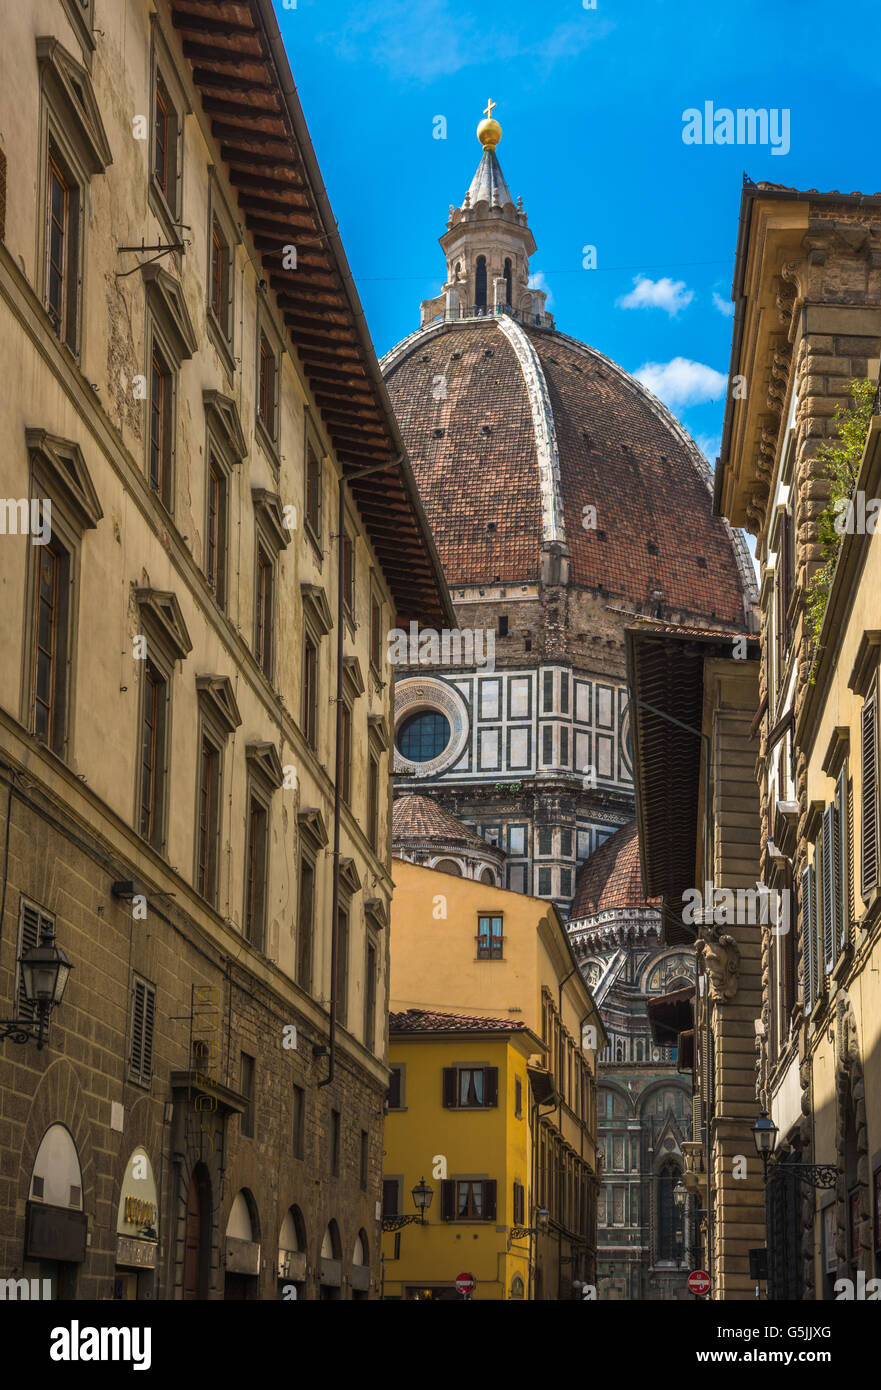 Street of Florence with Santa Maria del Fiore Cathedral, also called Duomo, in the back, Tuscany, Italy - Stock Image